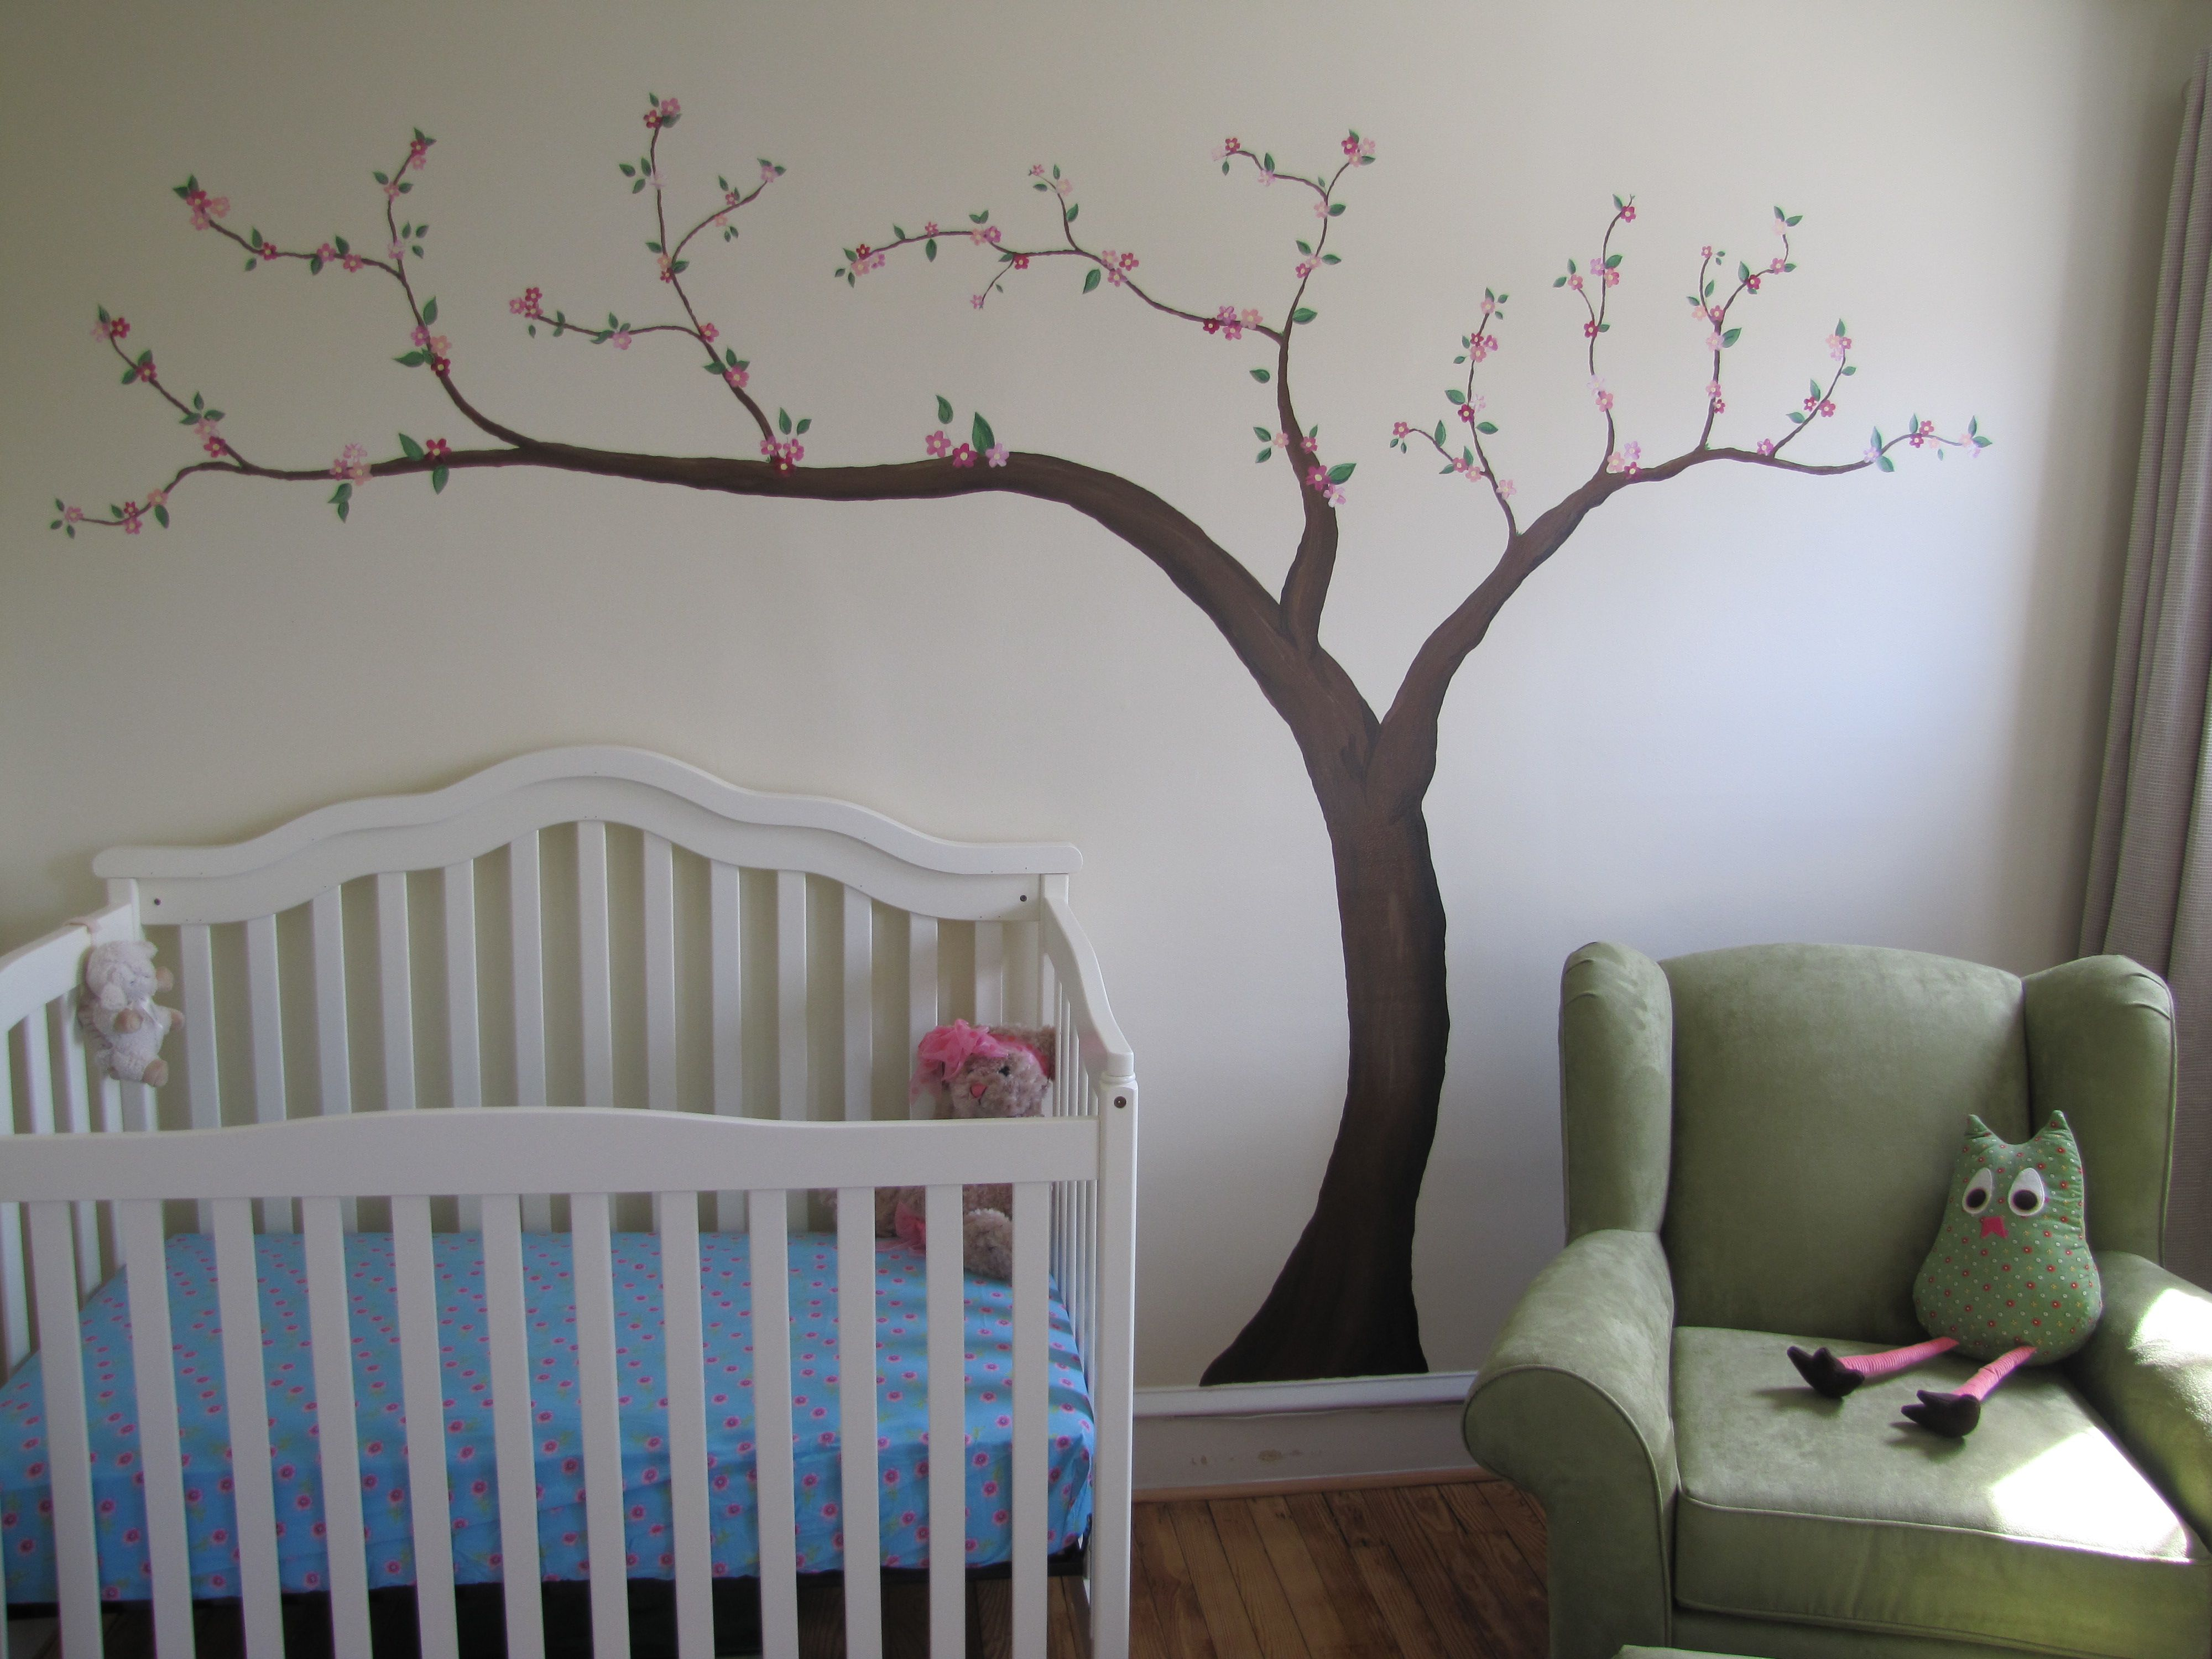 The Tree Mural Rachel And I Painted In Madelyn S Room Our Handpainted Version Of Pottery Barn Kids Cherry Blossom Decal Tree Mural Pottery Barn Kids Kids Room